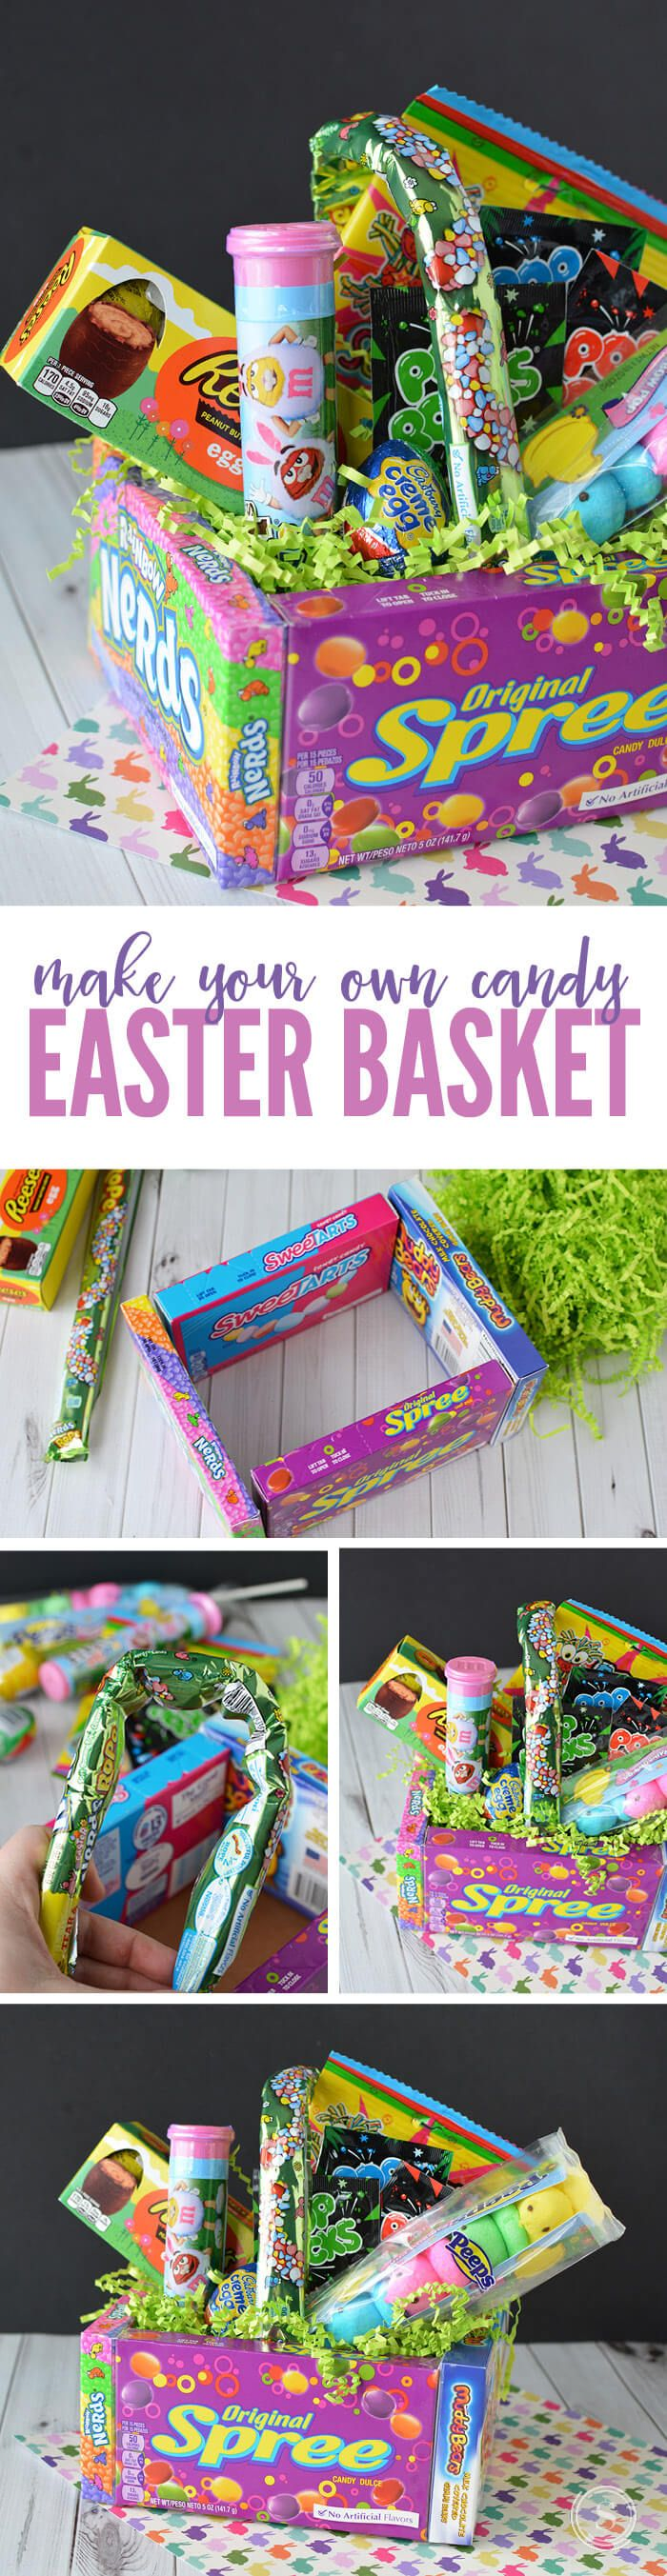 DIY Candy Easter Basket! An easy and creative way to make a FUN Easter Basket as a gift this year! These make a great Teacher Gift too!